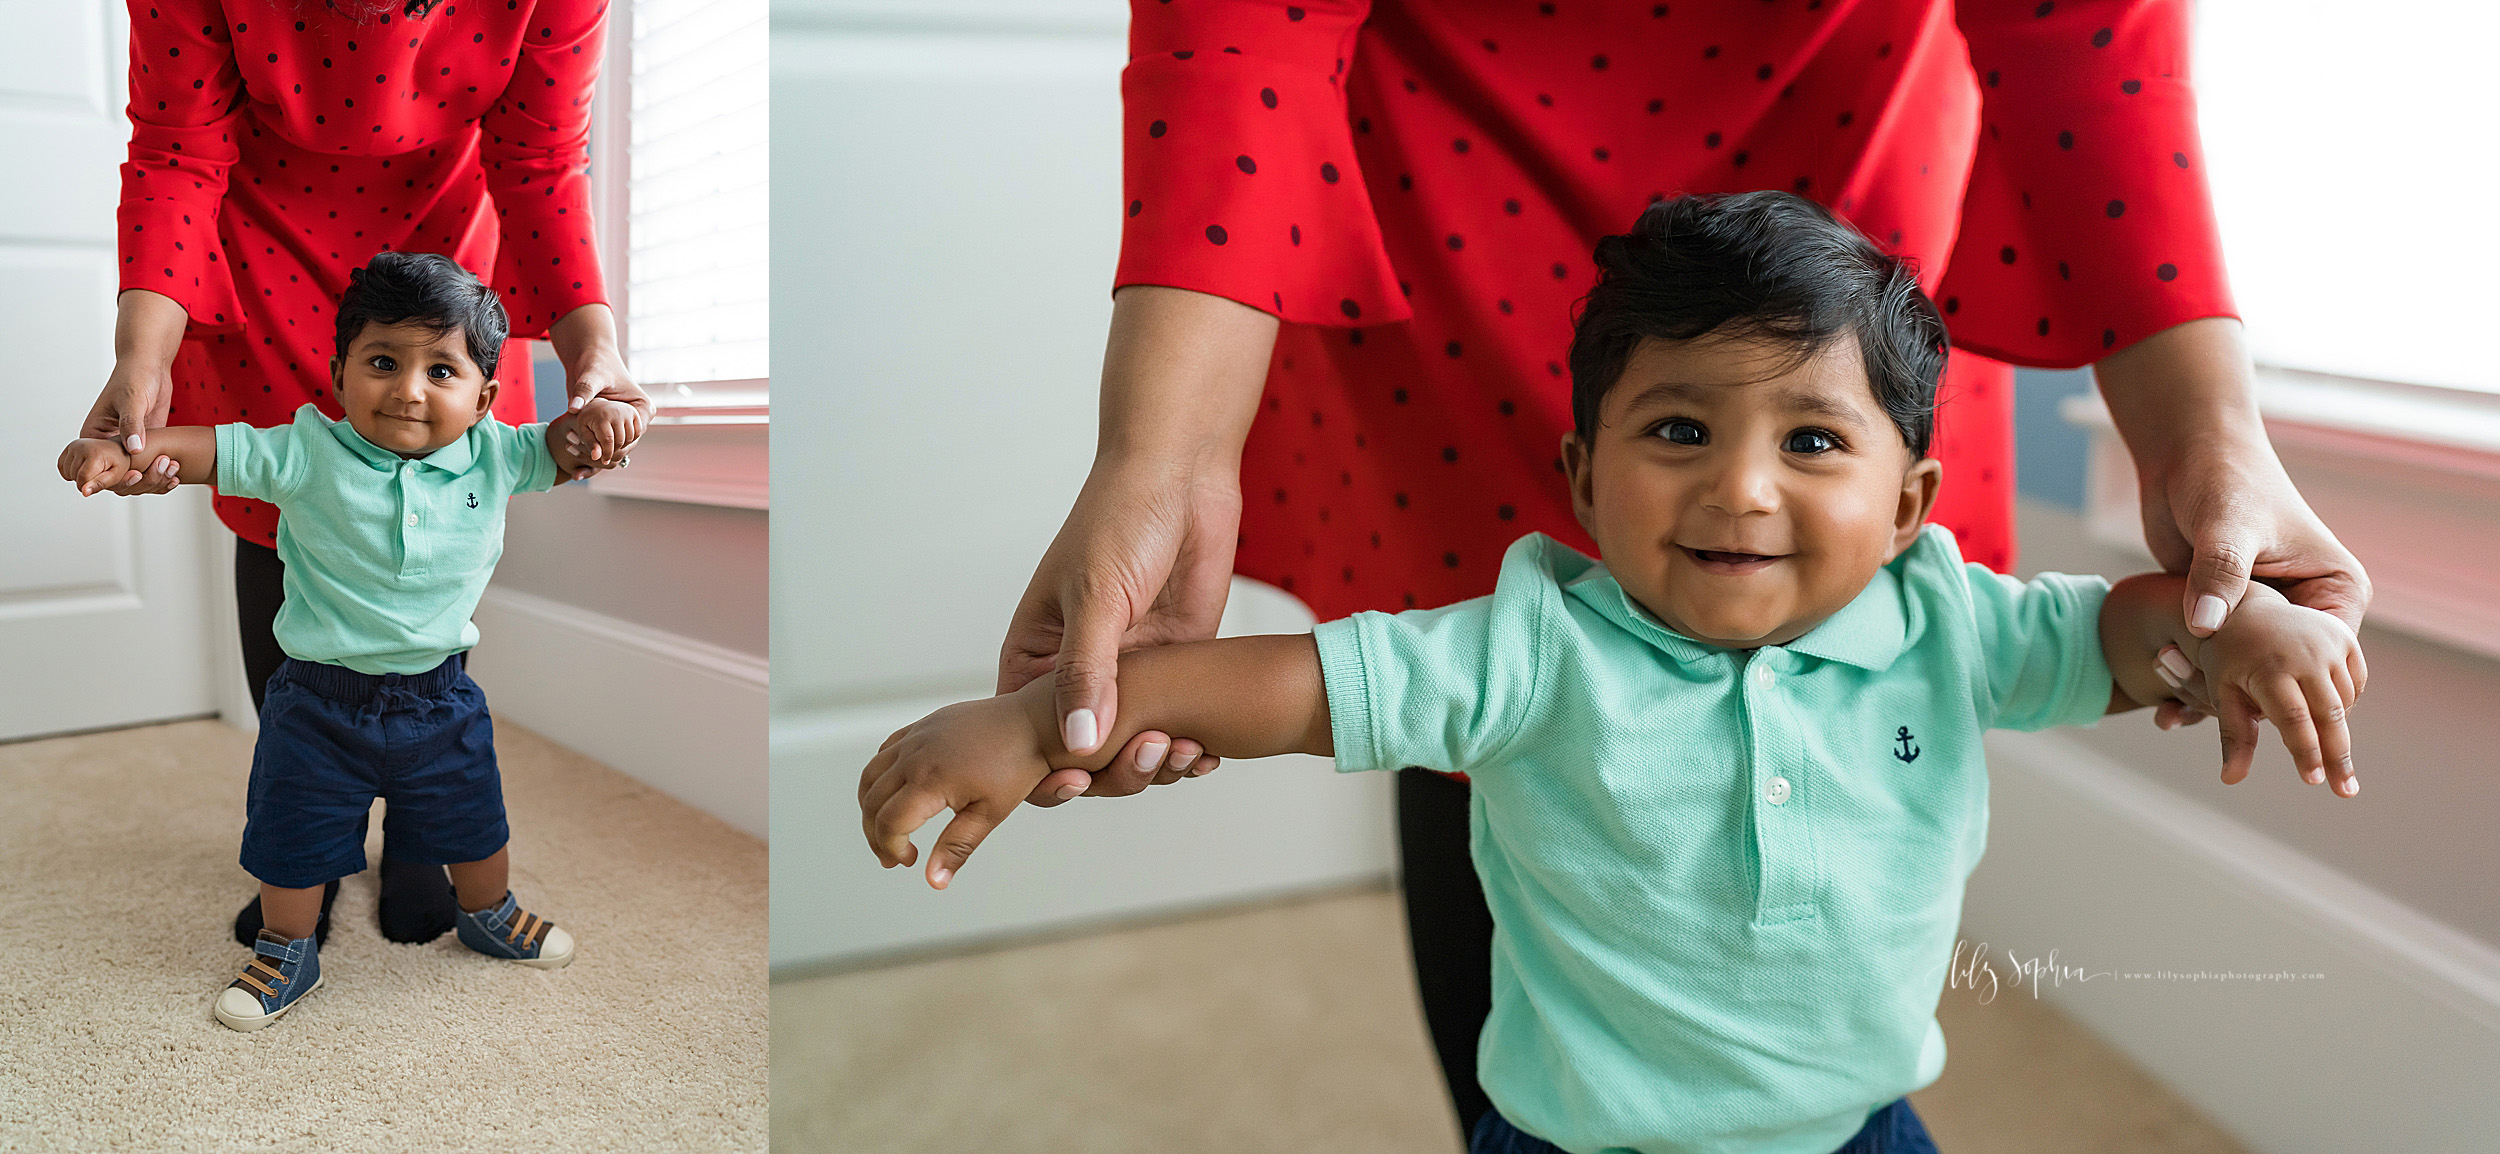 atlanta-brookhaven-east-cobb-marietta-candler-park-sandy-springs-buckhead-virginia-highlands-west-end-decatur-lily-sophia-photography-in-home-lifestyle-session-eight-month-milestone-indian-family_1665.jpg